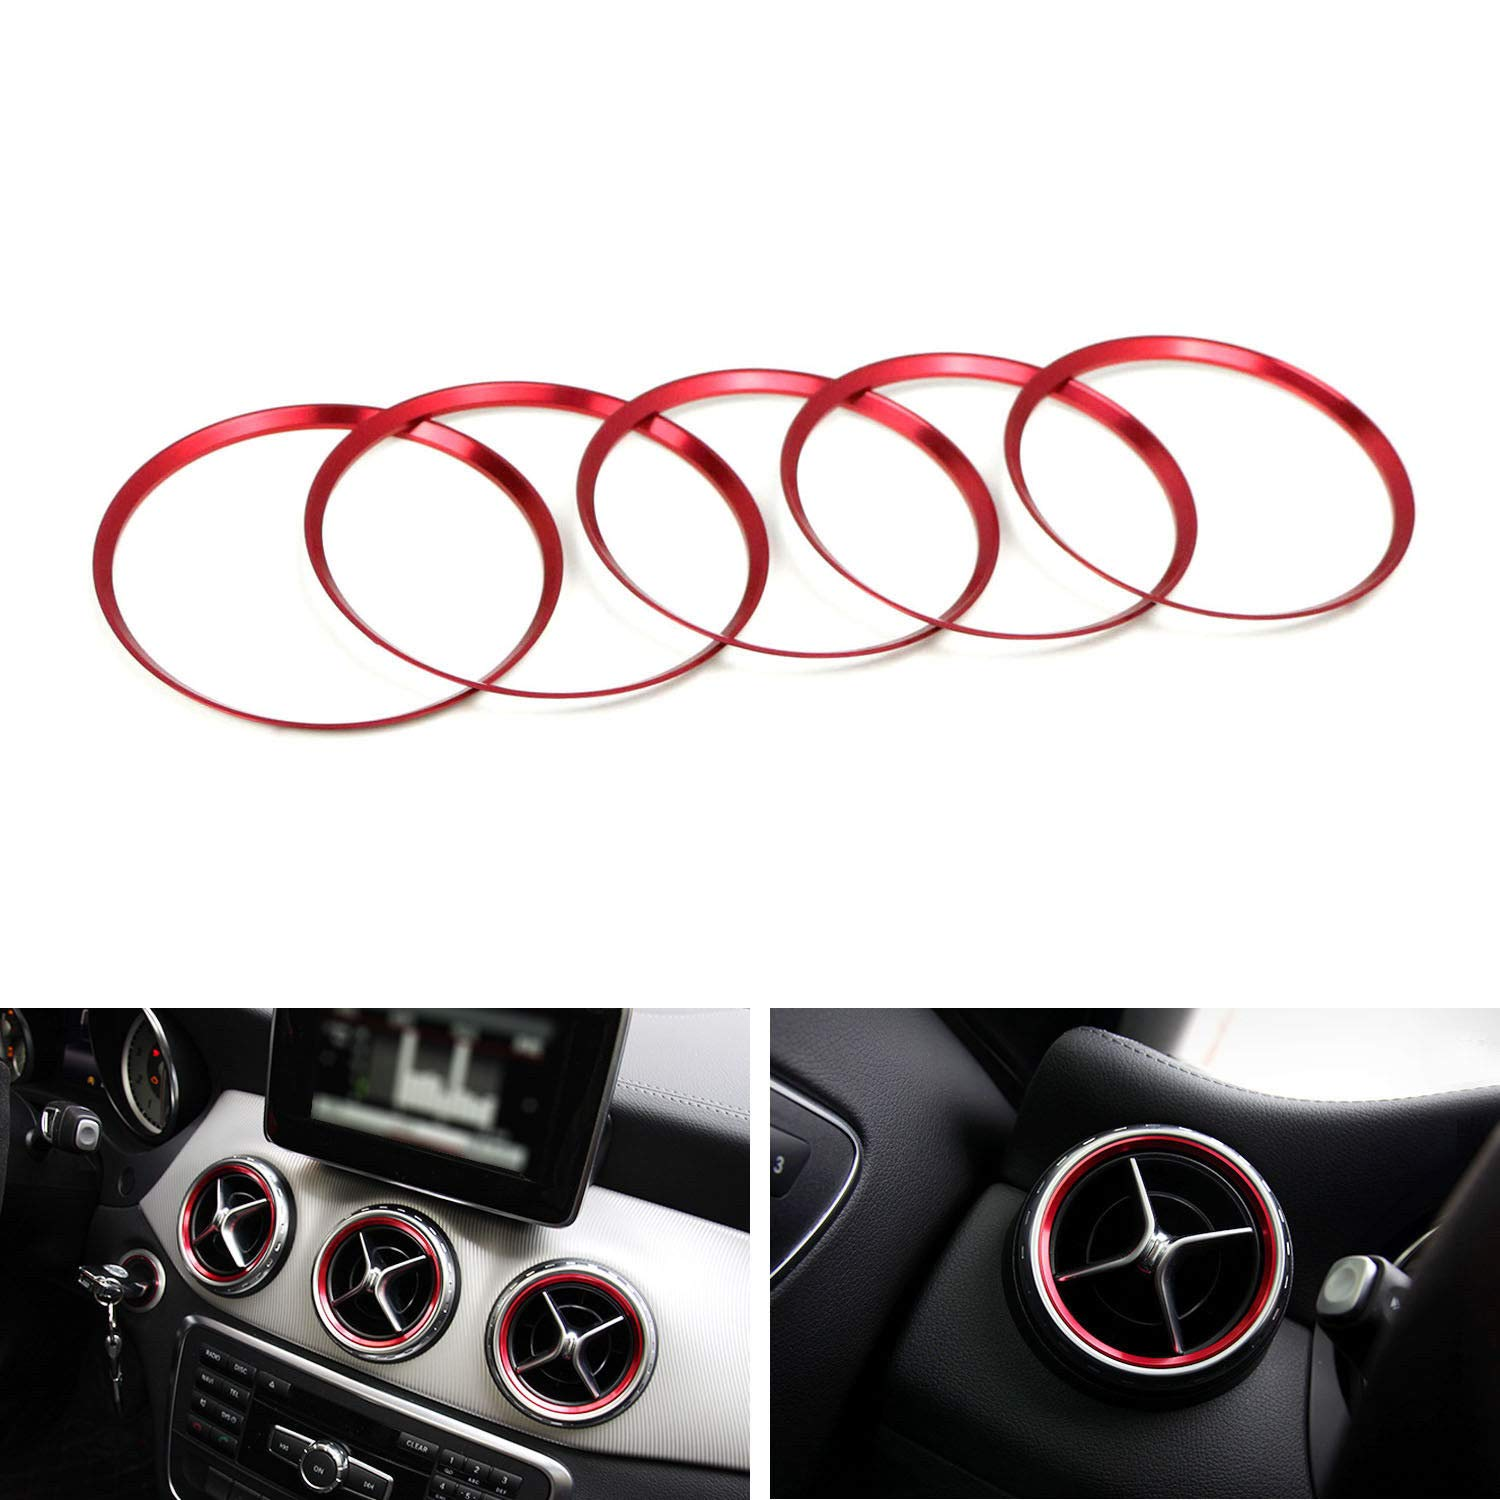 1 iJDMTOY Sports Red Aluminum Steering Wheel Center Decoration Cover Trim For 2015-up Mercedes C E CLA GLA GLC GLE Class